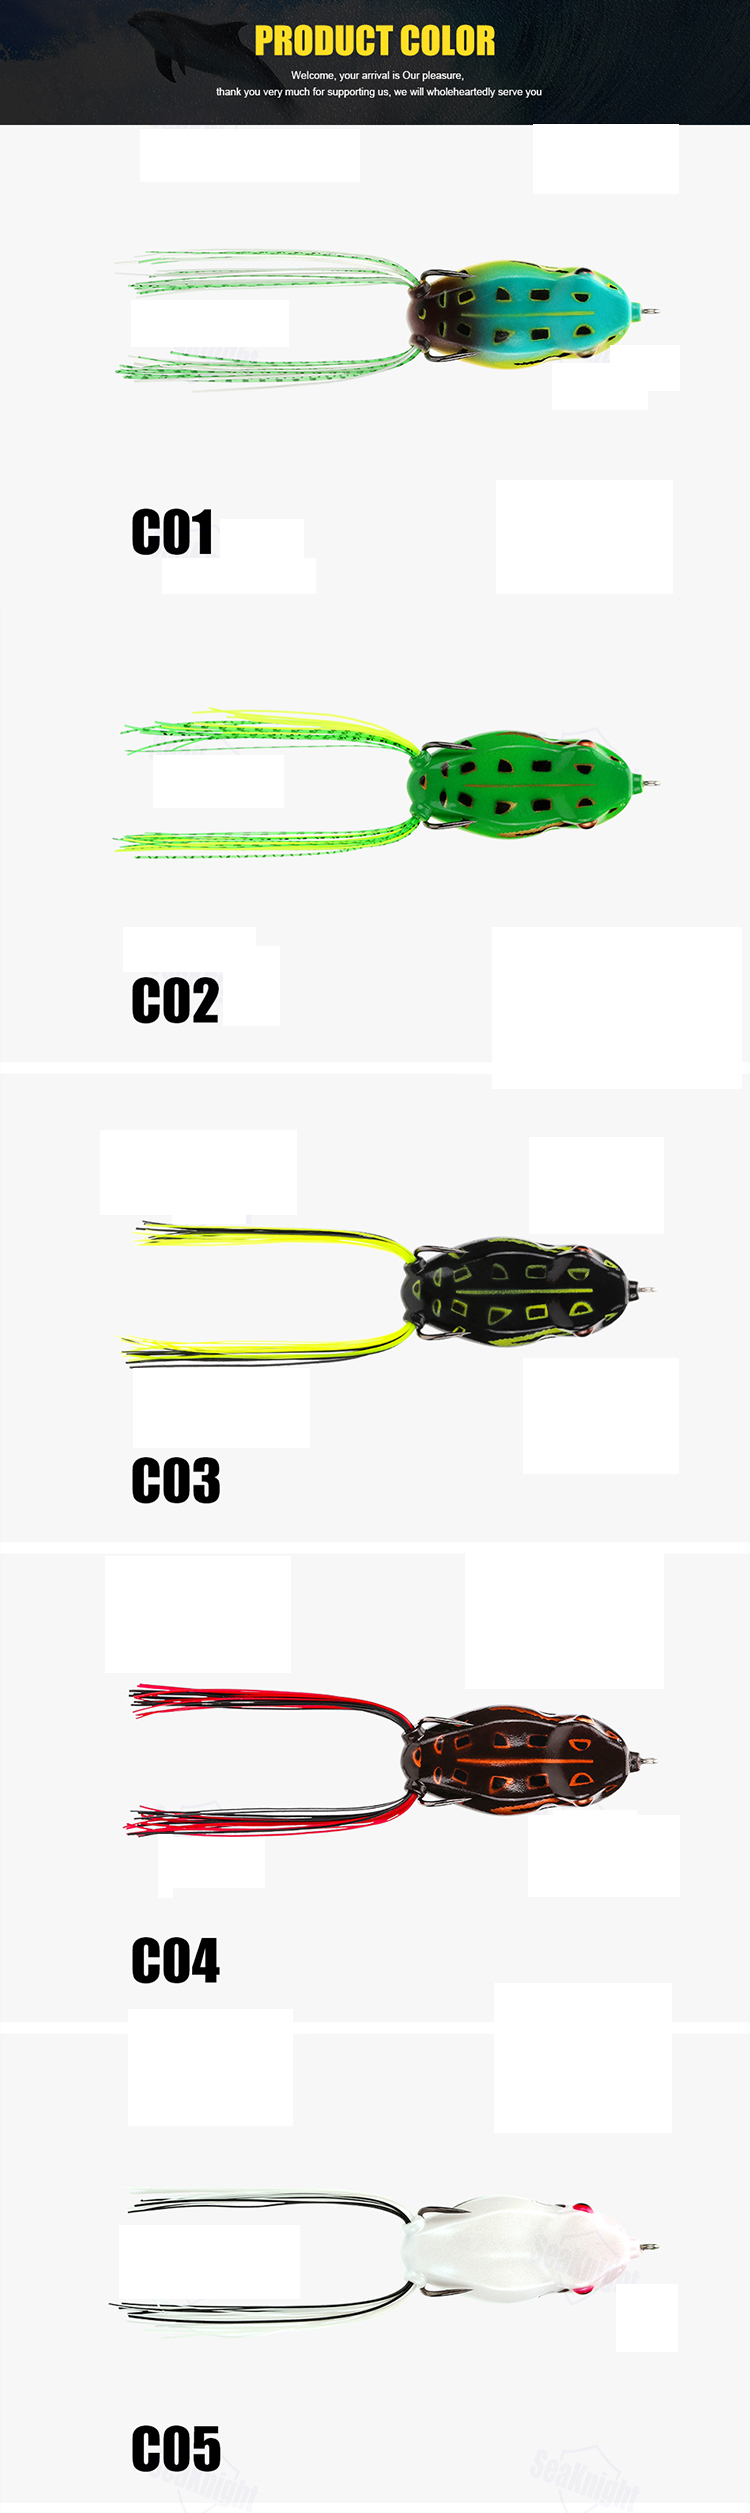 SeaKnight SK403 5PCS 6.5g 45mm Topwater Soft Fishing Lure Lifelike Floating Frog Bait